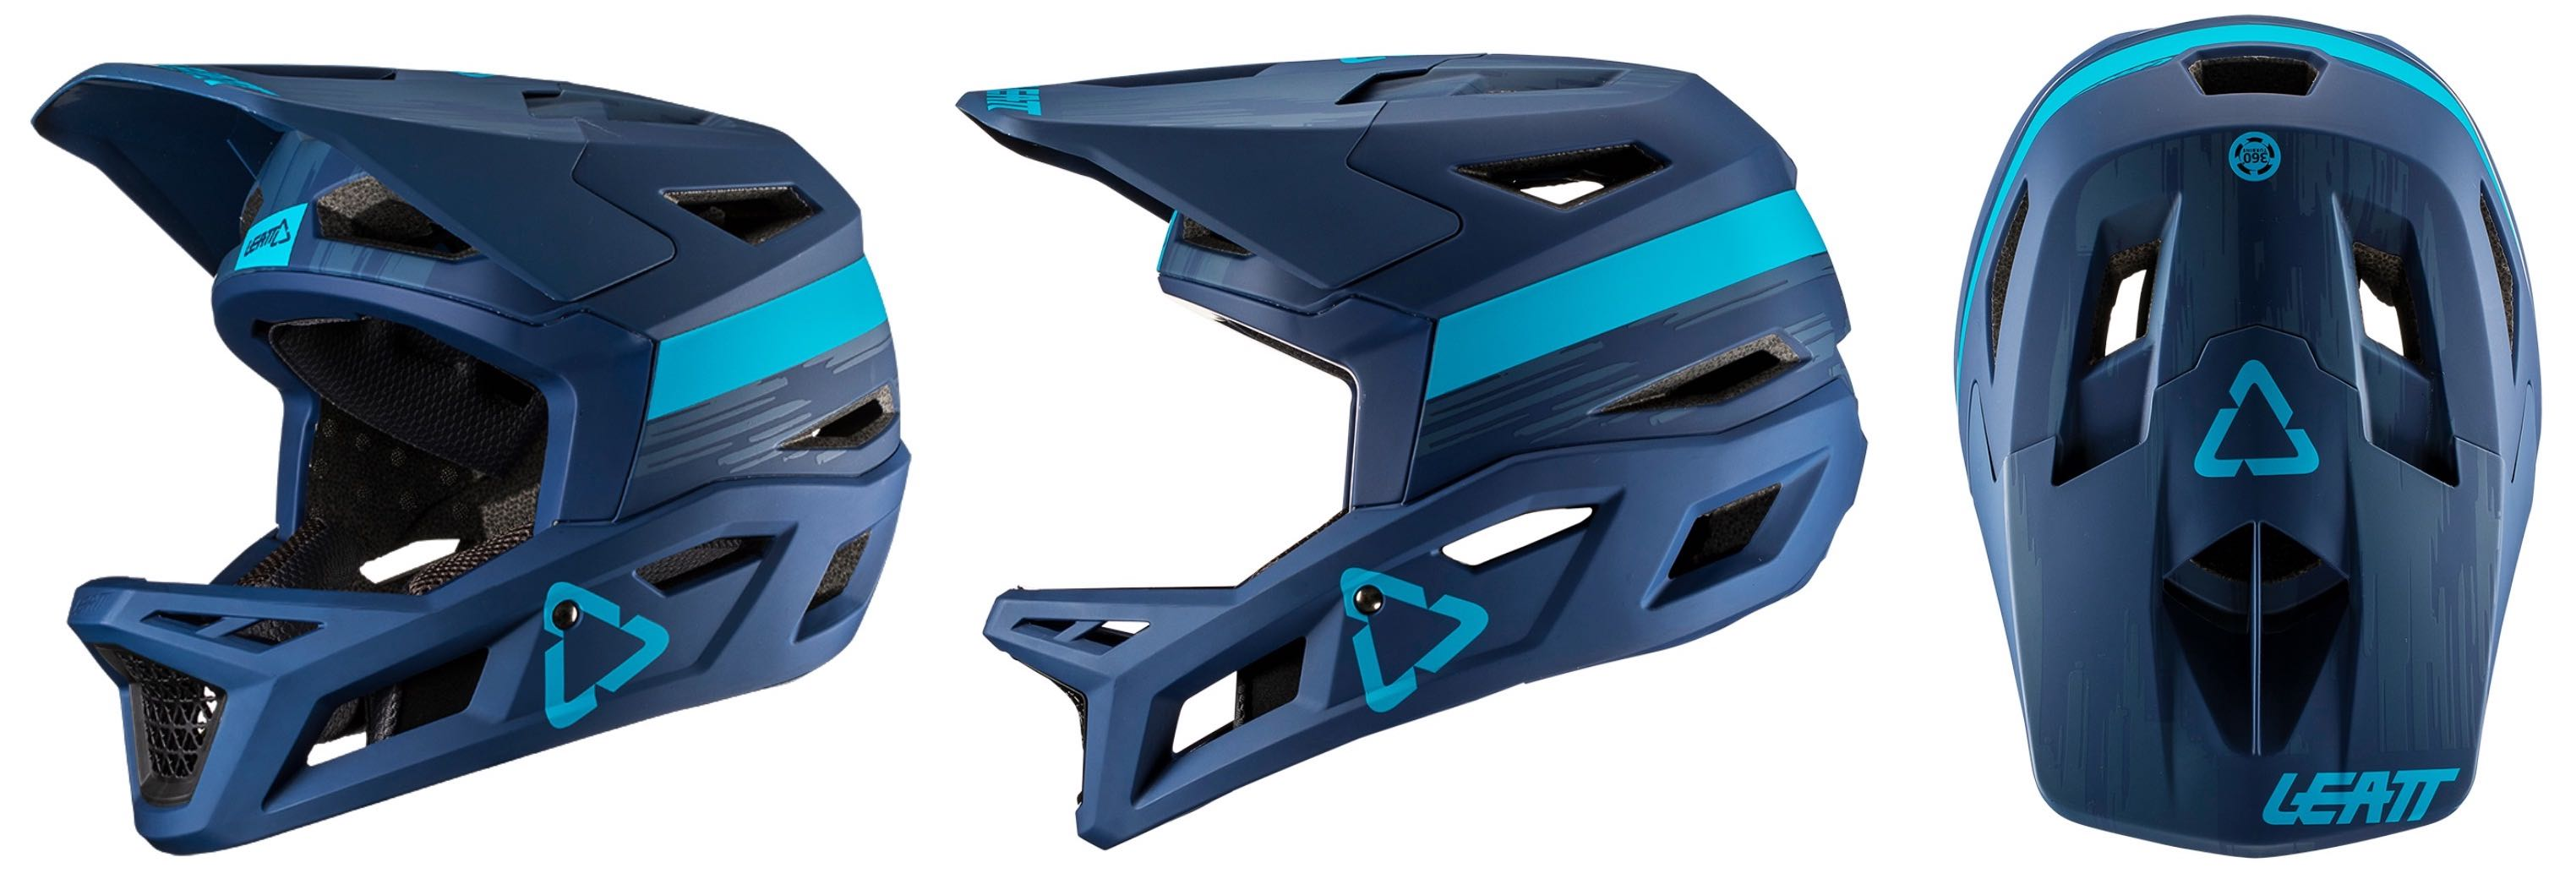 The Leatt DBX 4.0 Helmet in Ink colour